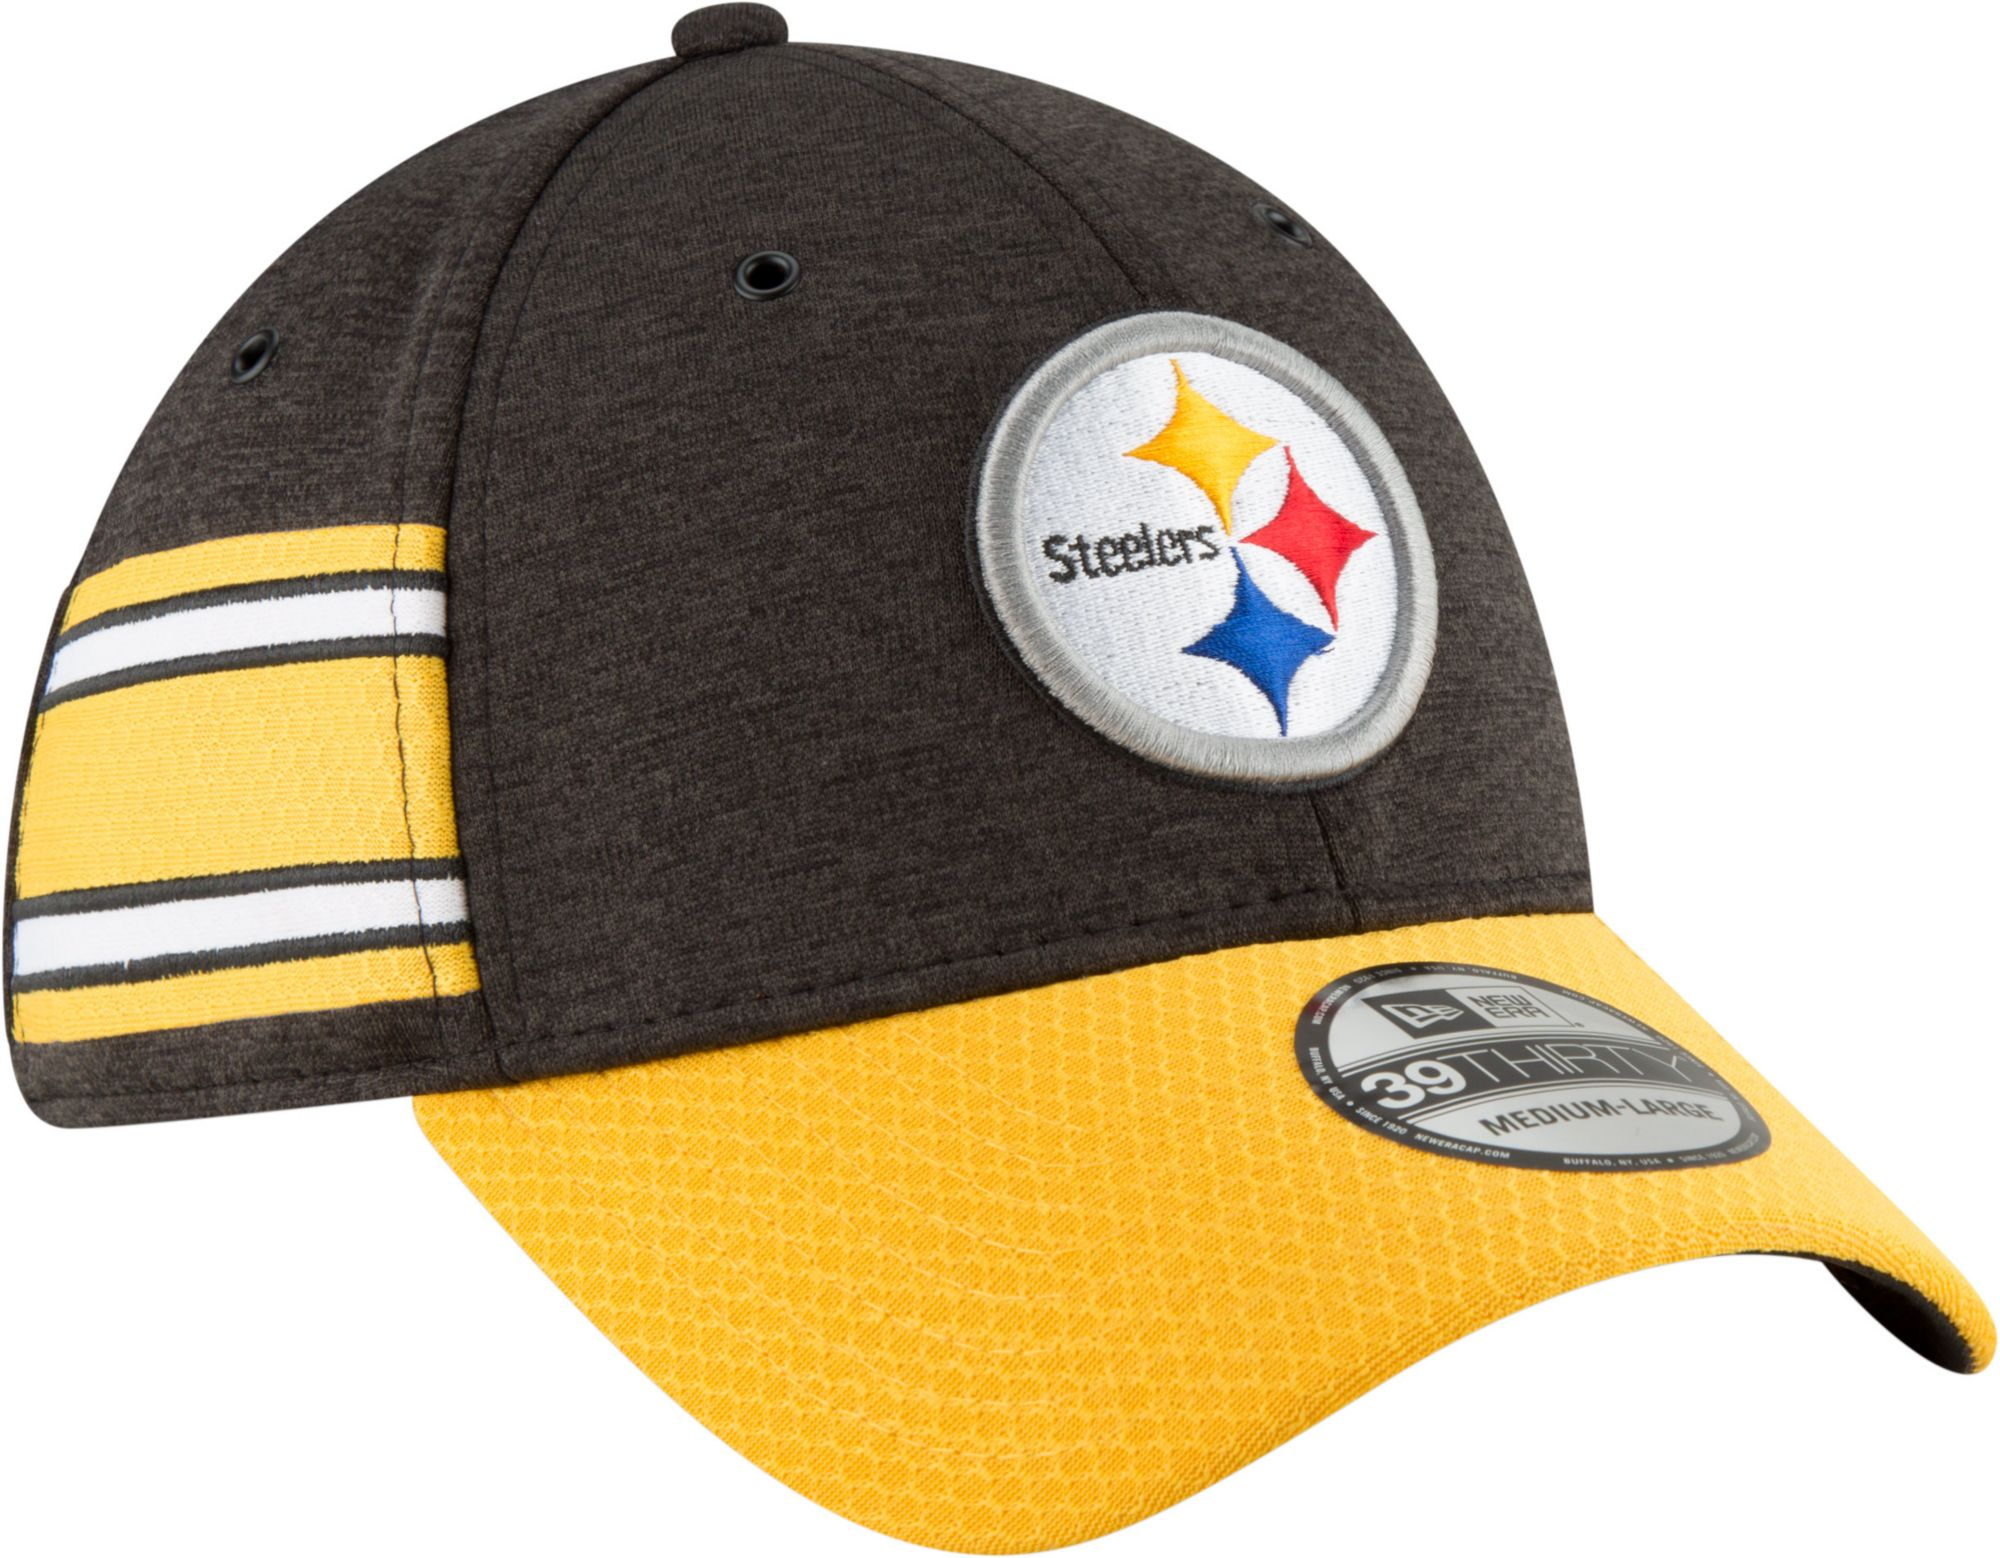 04e7b134 where can i buy steelers fitted hats new era email ca81c 9d56c